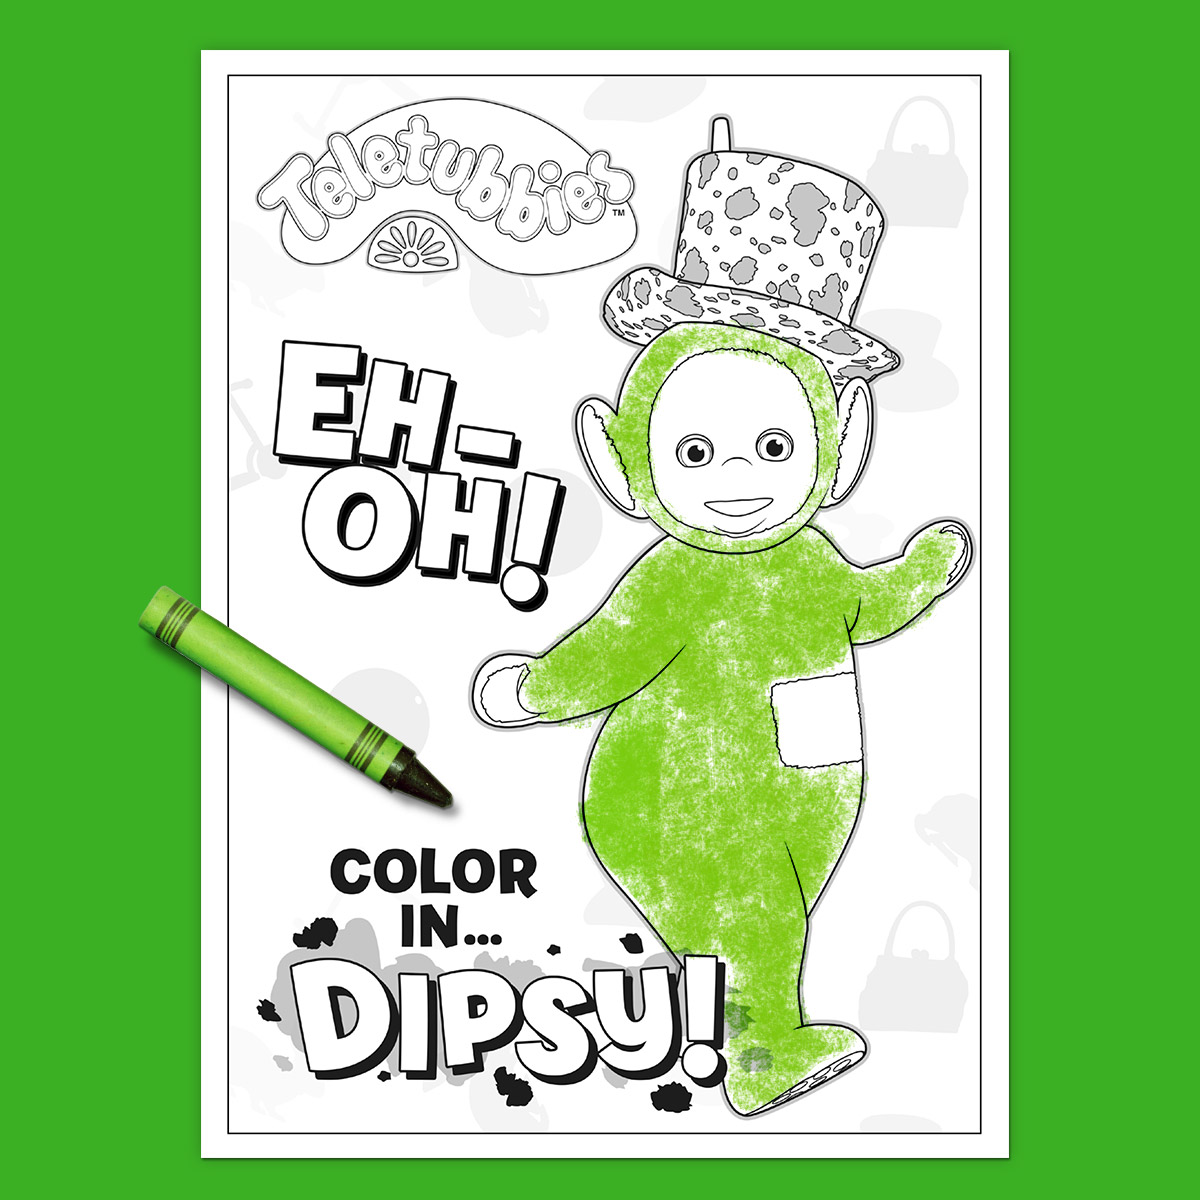 Teletubbies Coloring Page: Dipsy